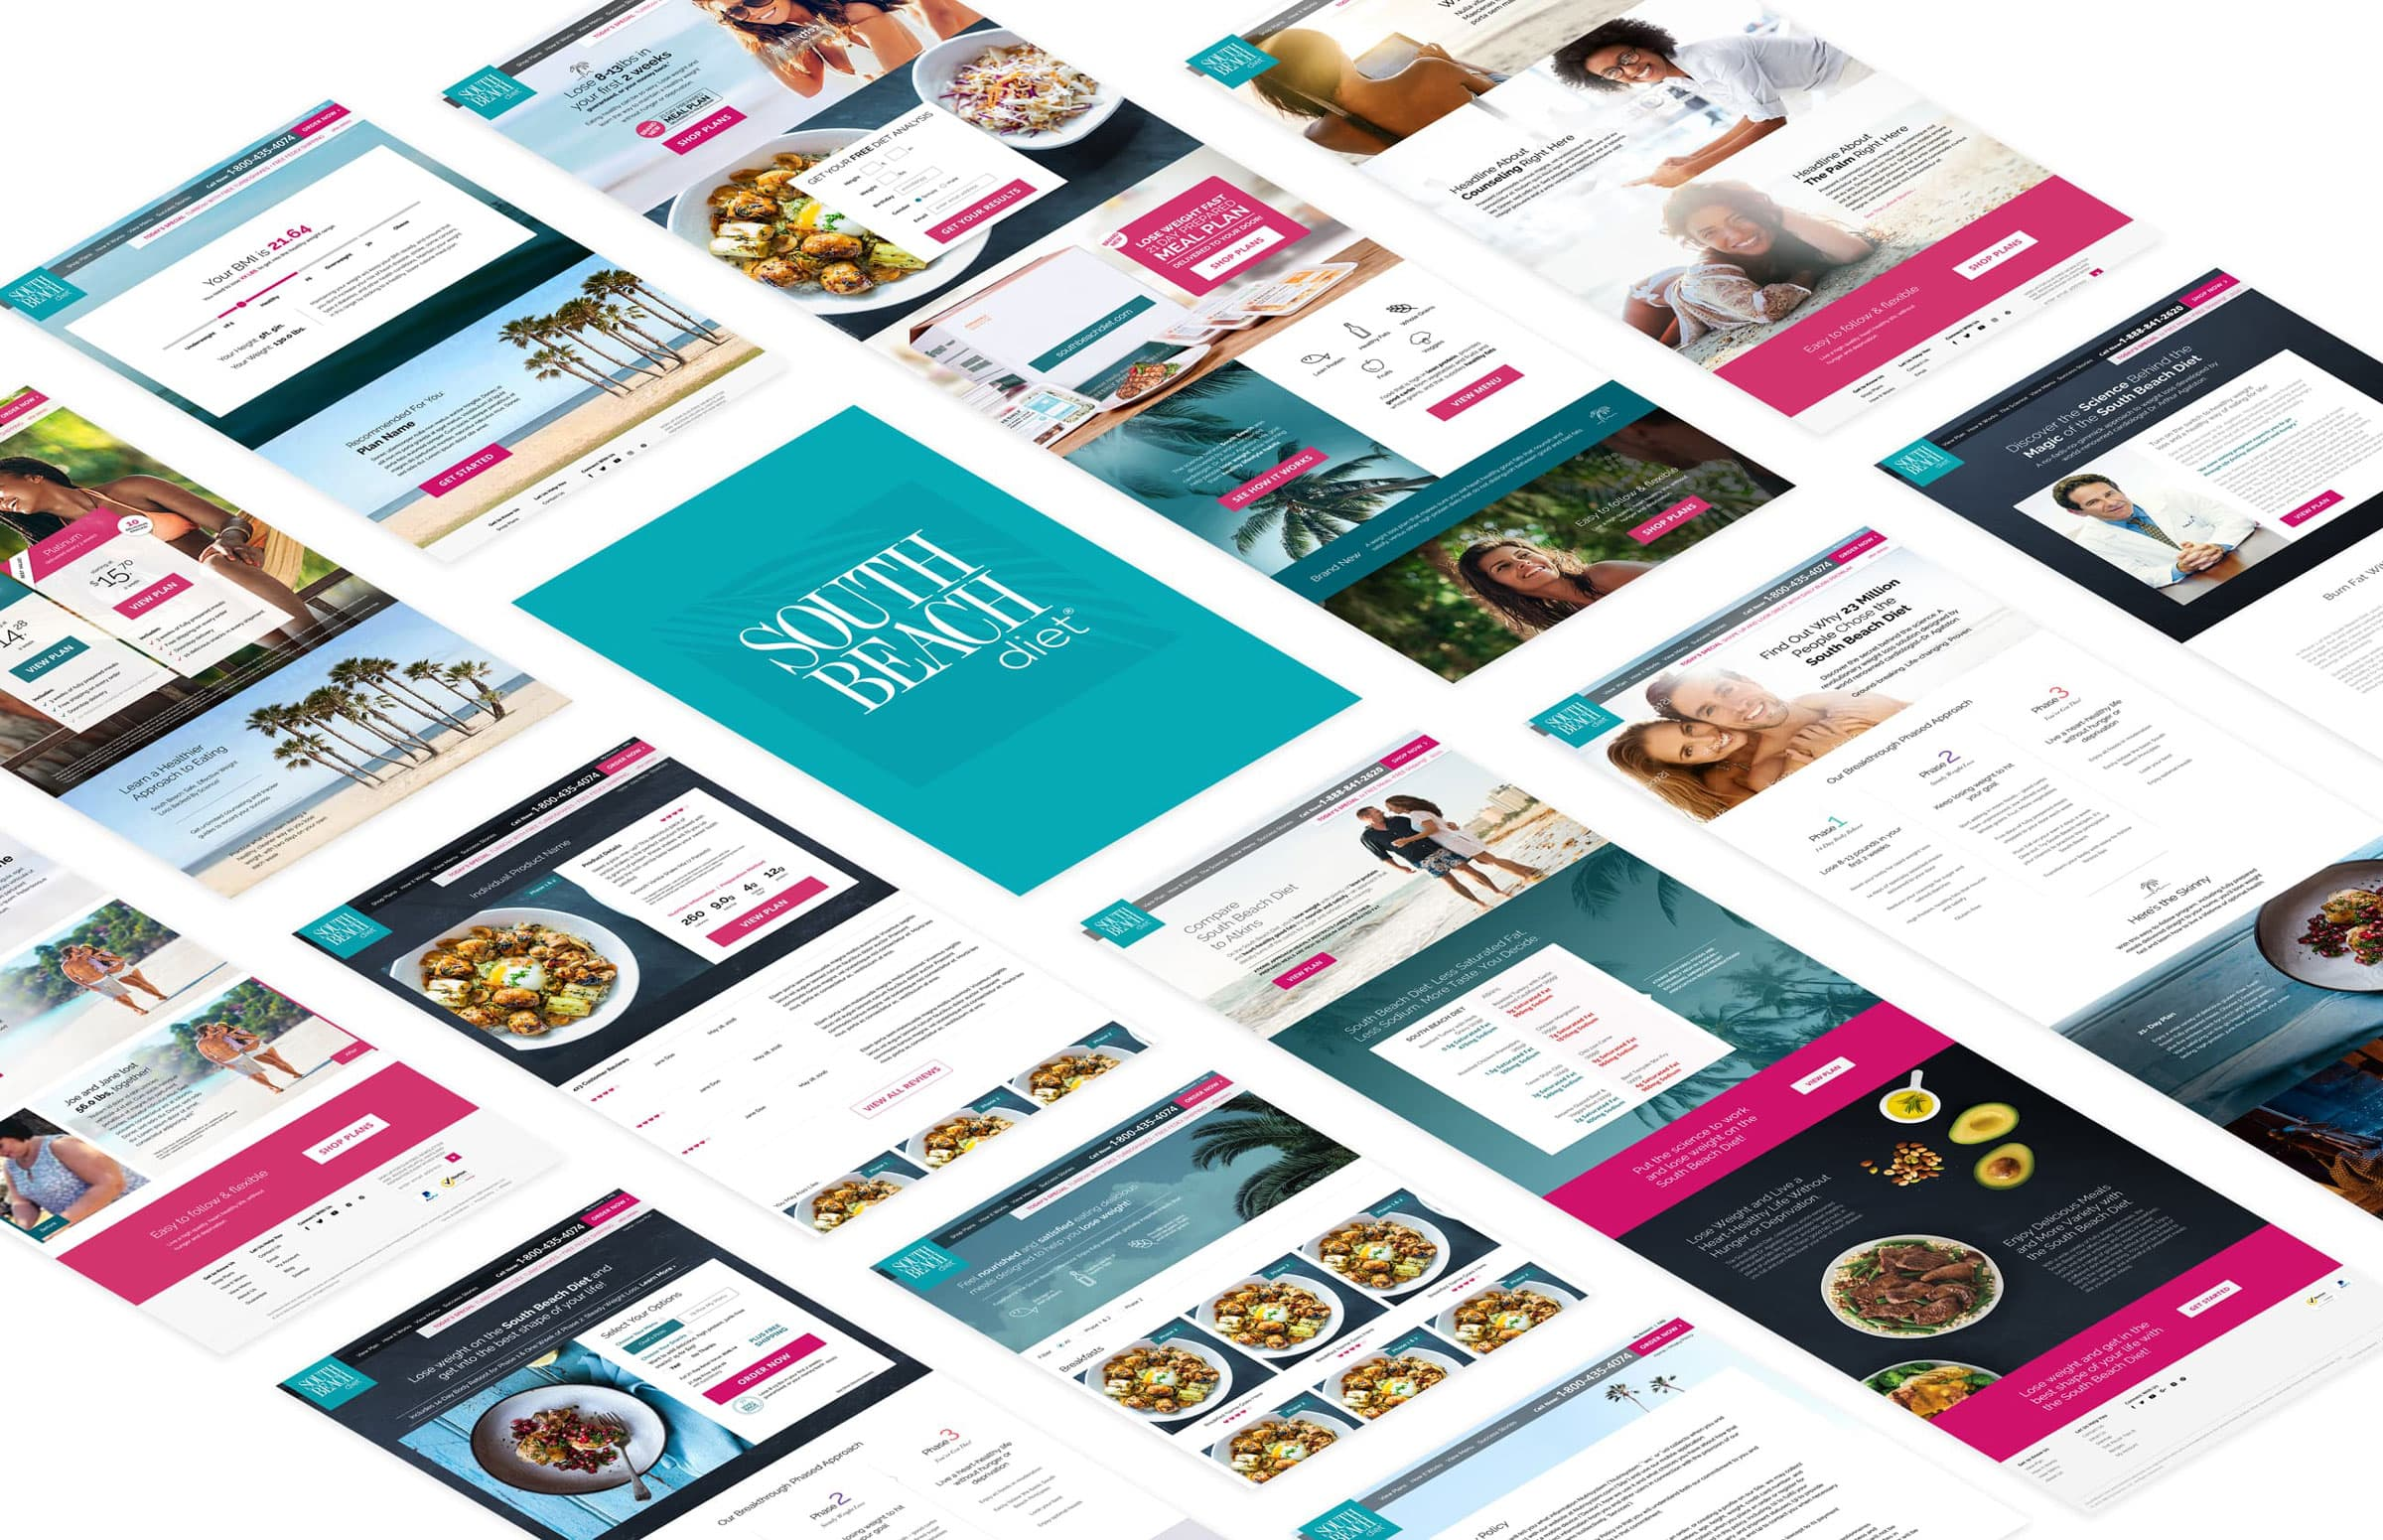 King Design South Beach Diet Website Design Layout